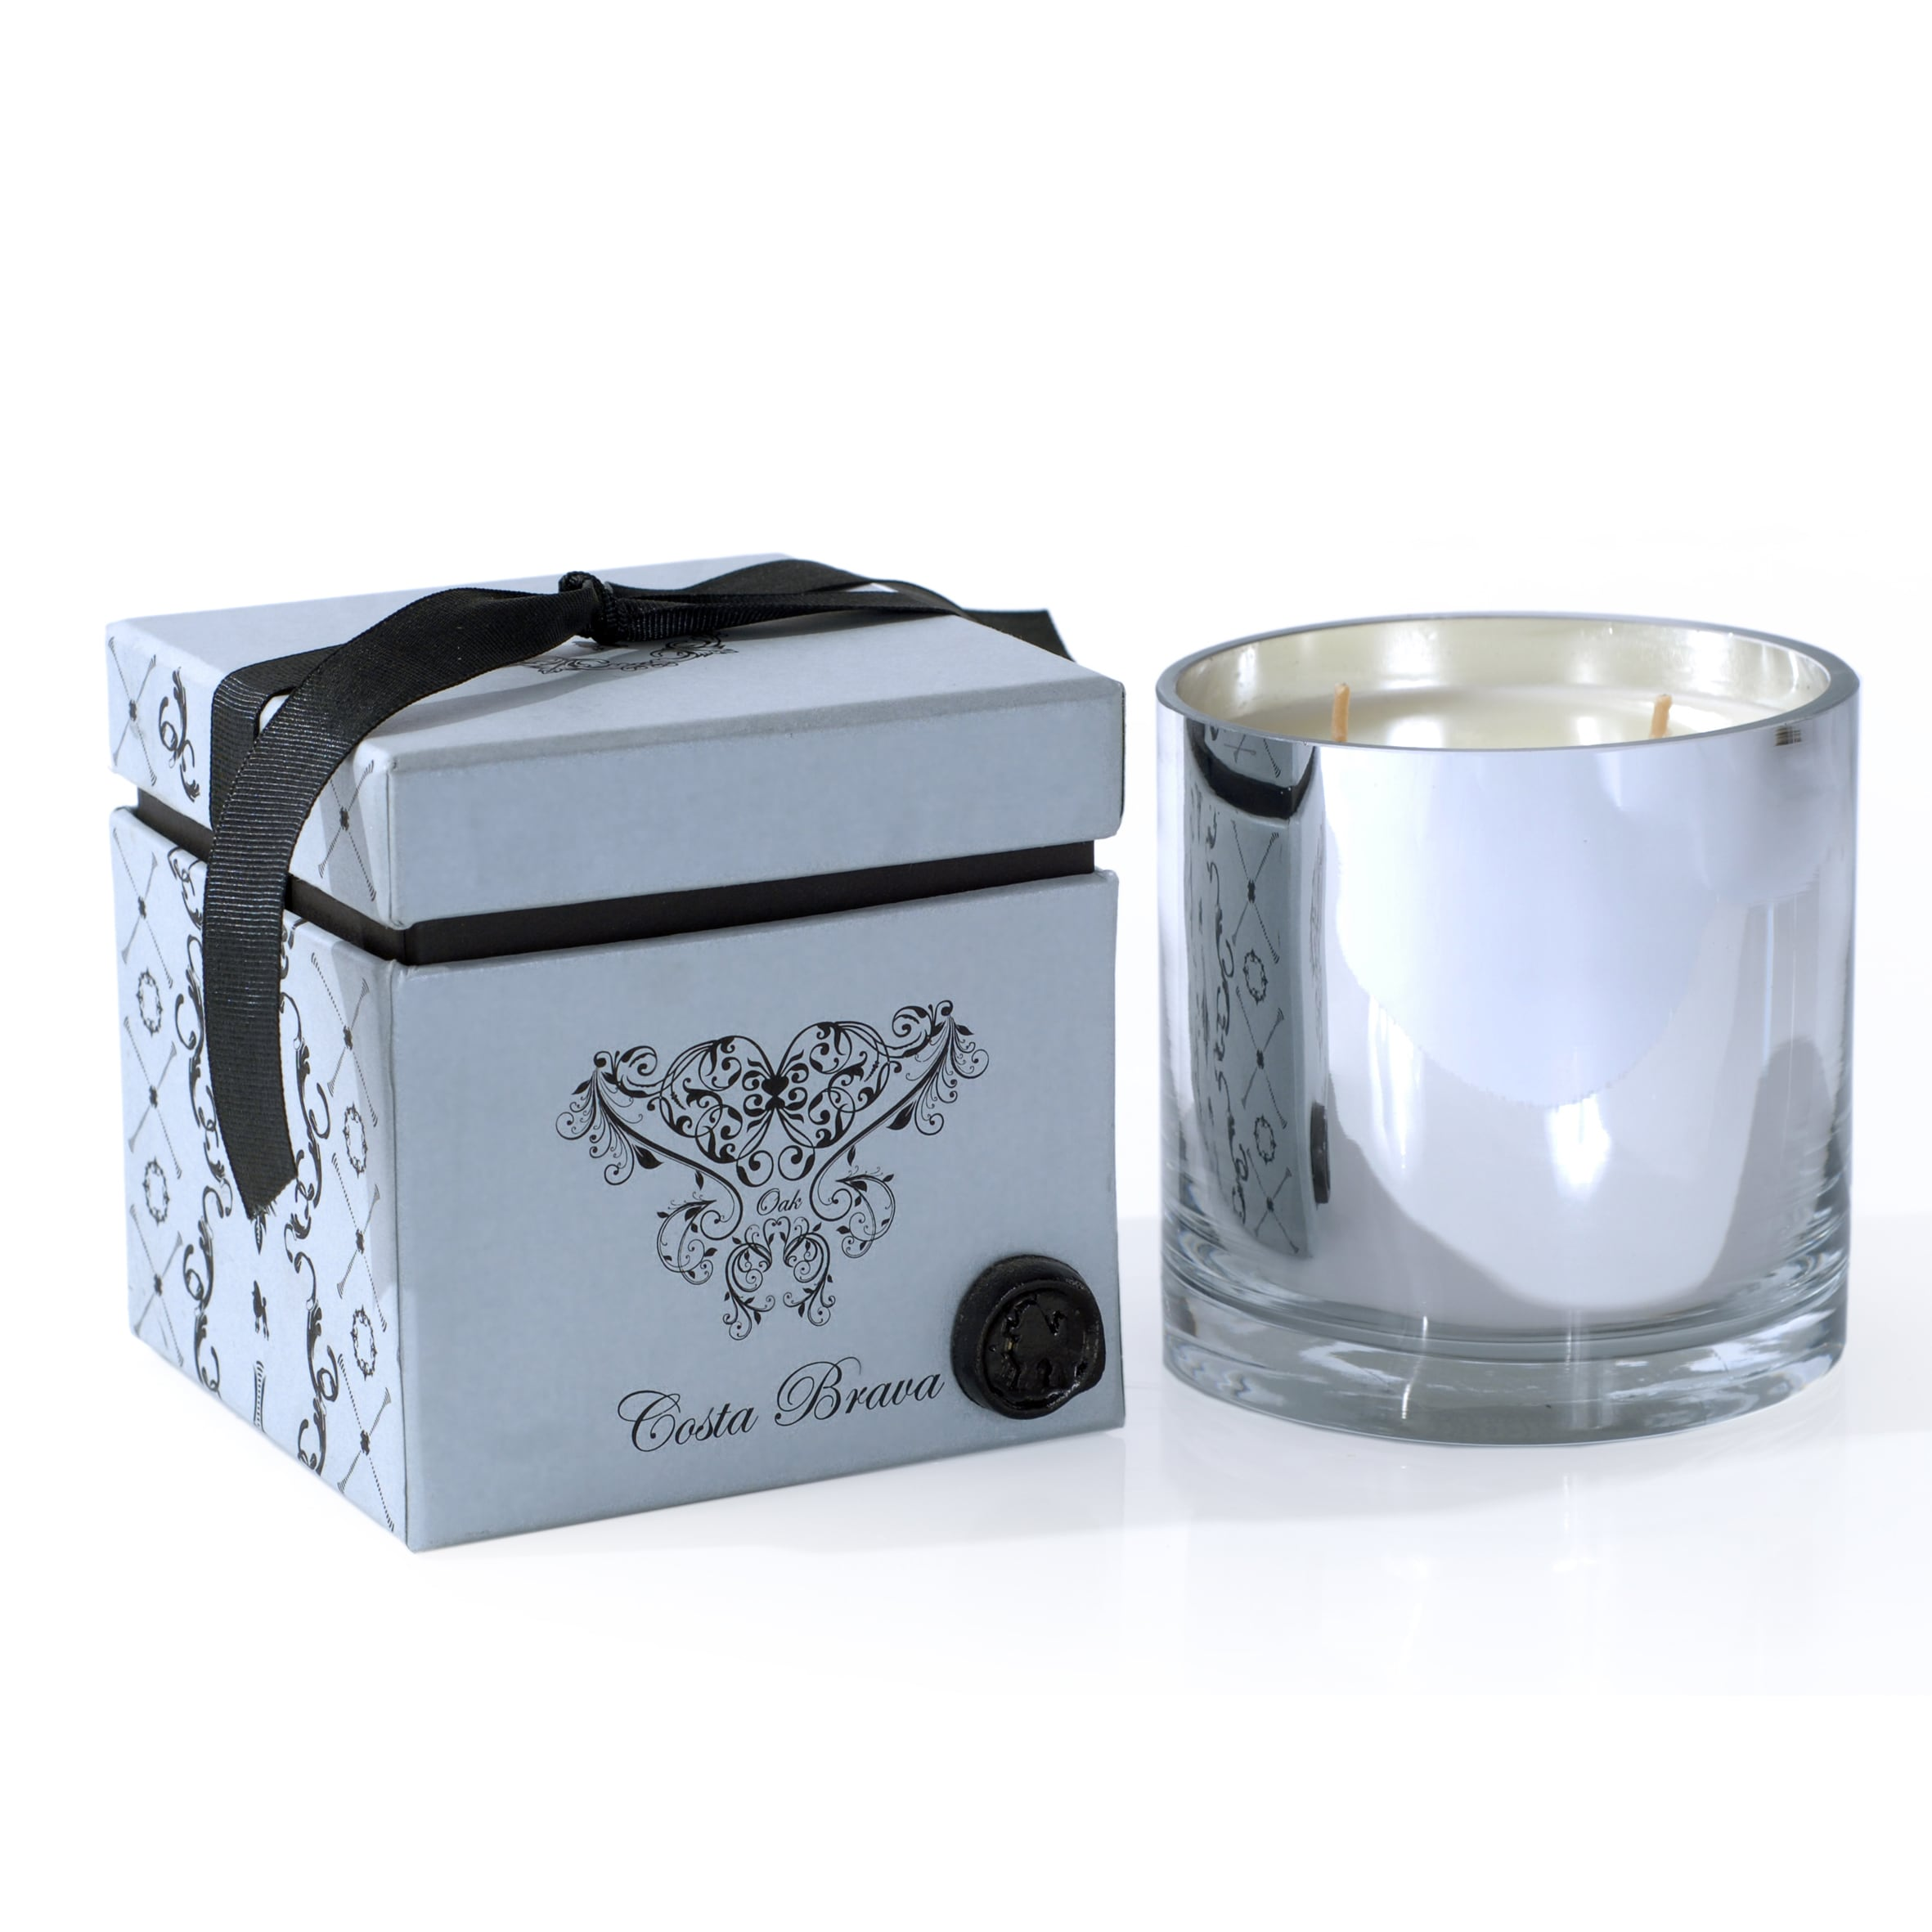 Costa Brava Oak Candle